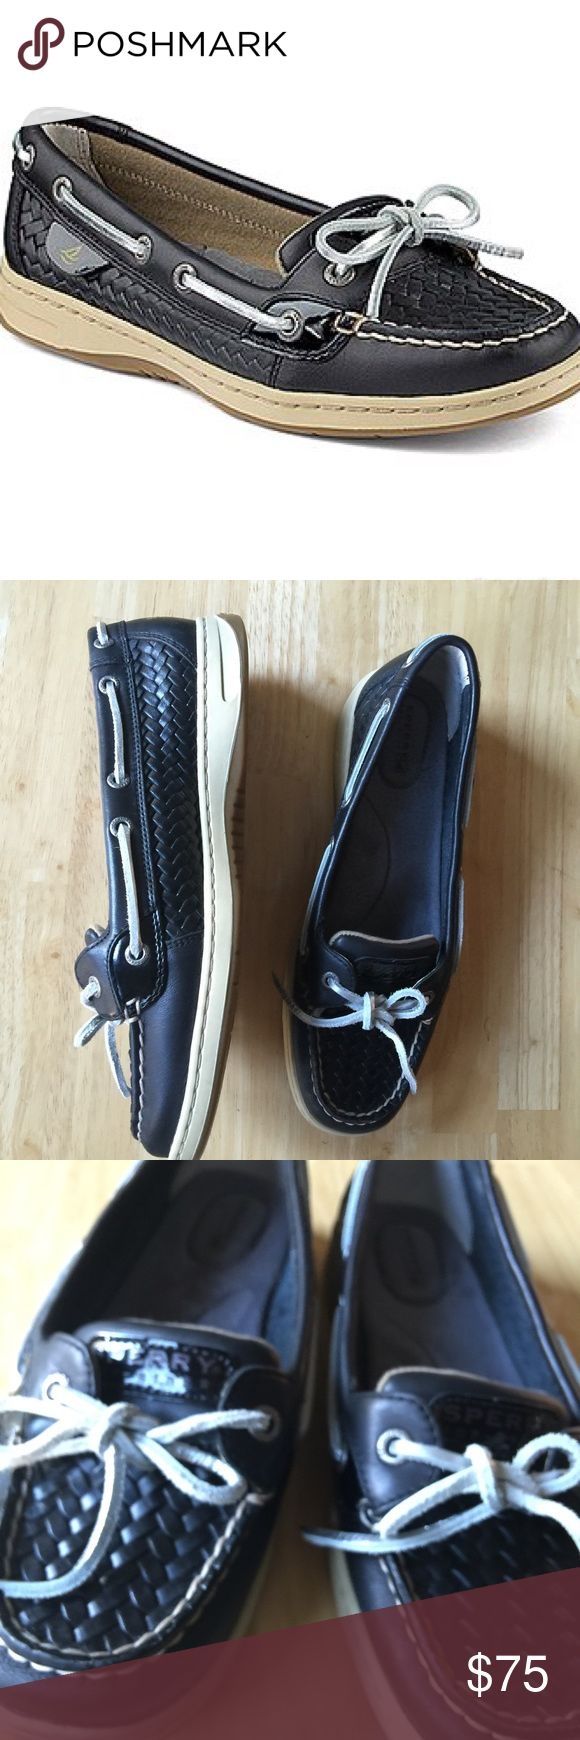 Sperry Top-Sider Women's Angelfish woven boat shoe NEW! Perfect condition Originally 90 Sperry Shoes Flats & Loafers